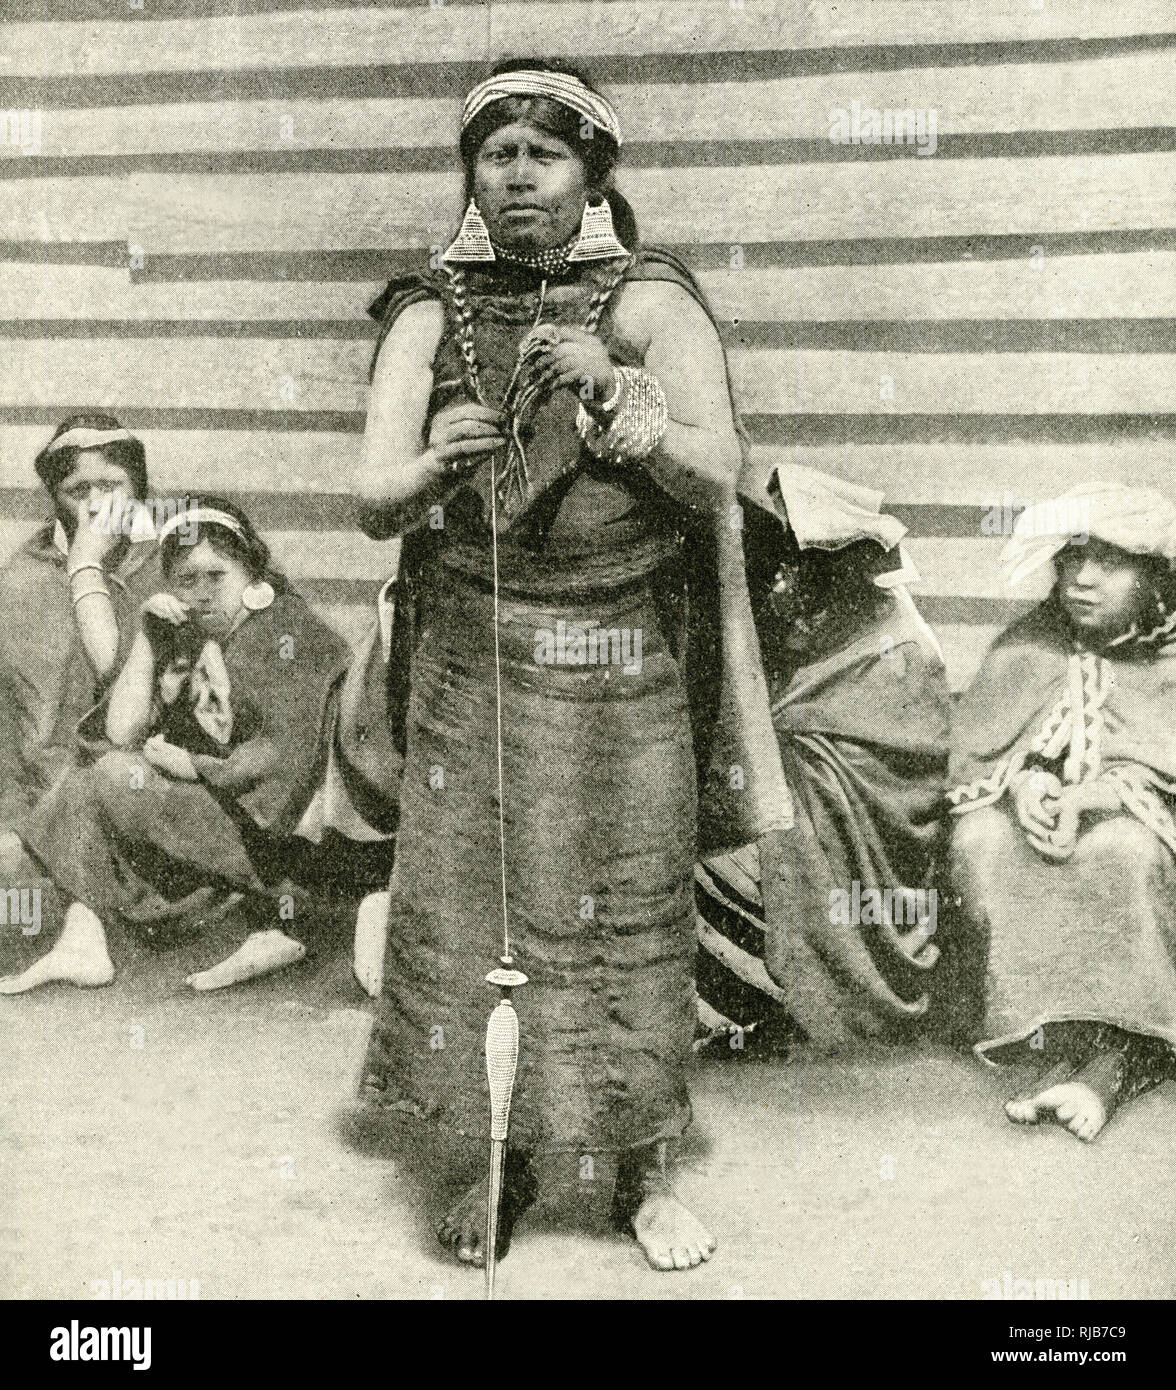 e9d6ac913 ... (Araucana) is an indigenous area of Chile inhabited by the Moluche  (Mapuche) people. The woman standing at the centre is wearing large silver  earrings.